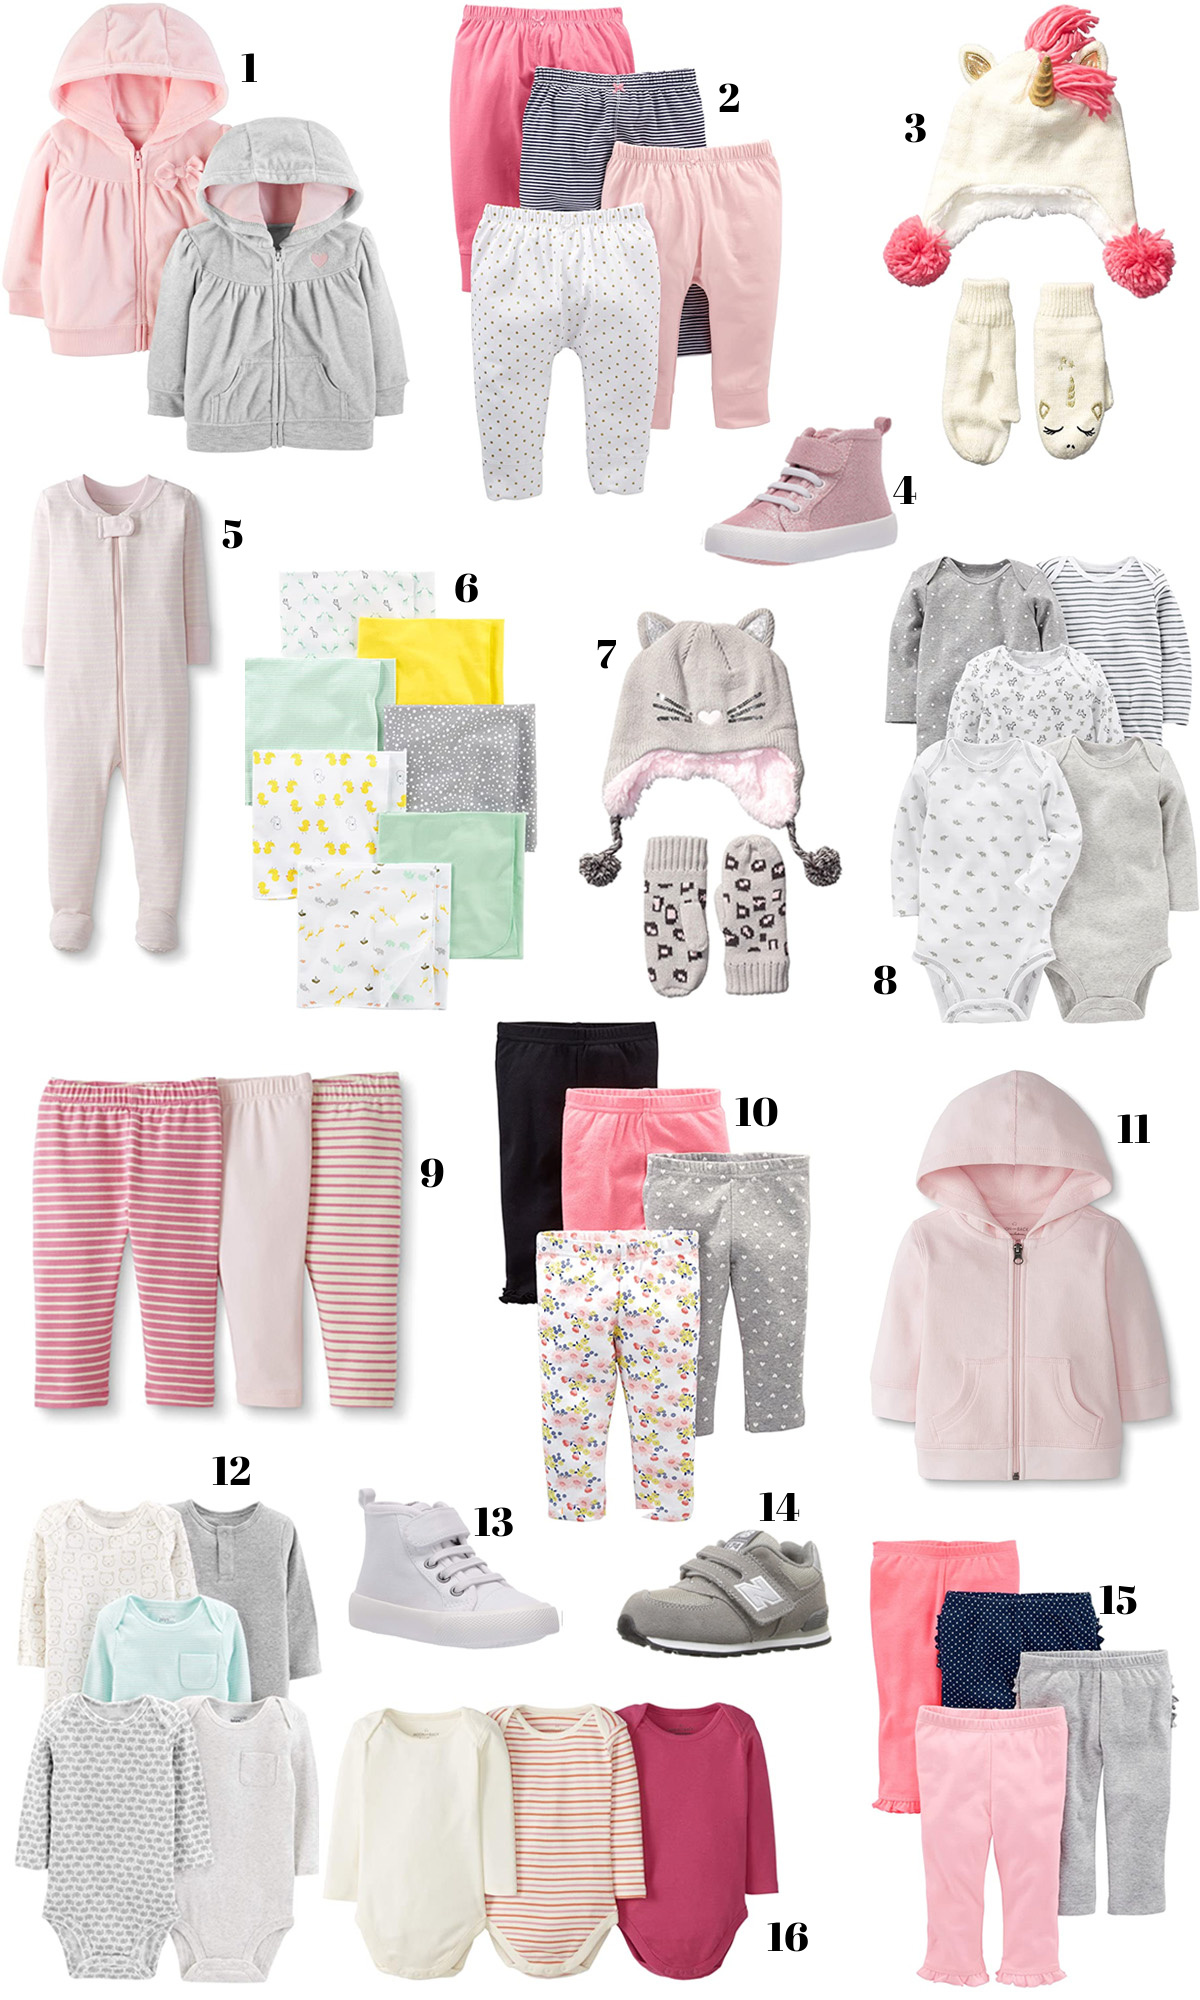 Amazon prime day for kids | kids clothing | clothing for kids | kids shoes | prime day for kids | onesies